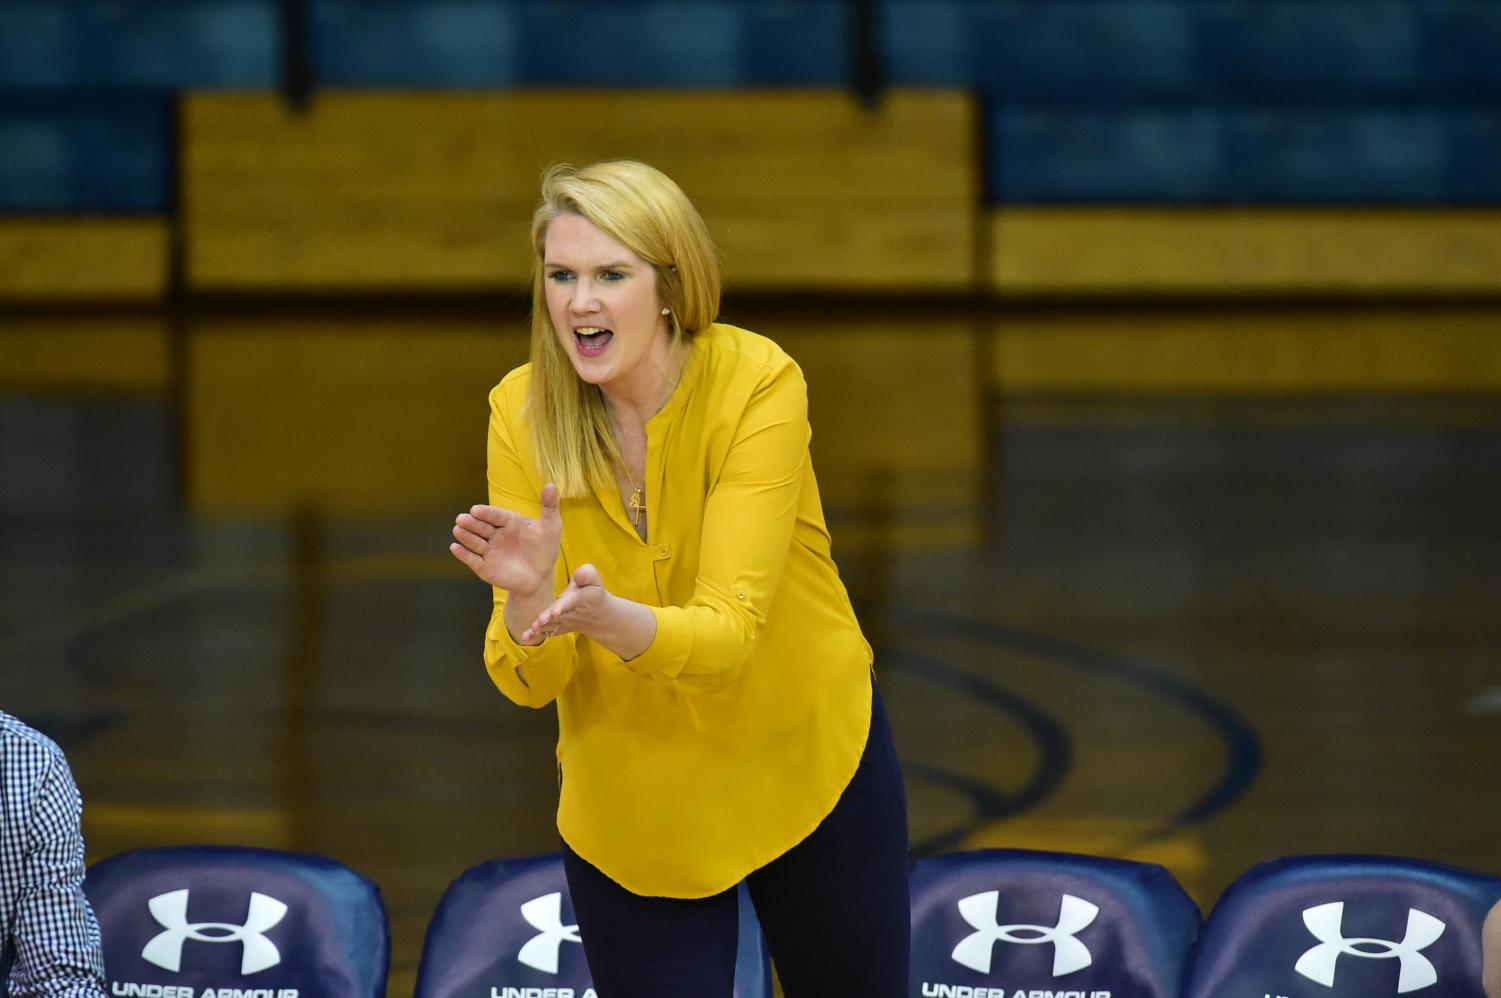 Schweihofer comes to Northeastern after five years in charge of LaSalle women's volleyball.